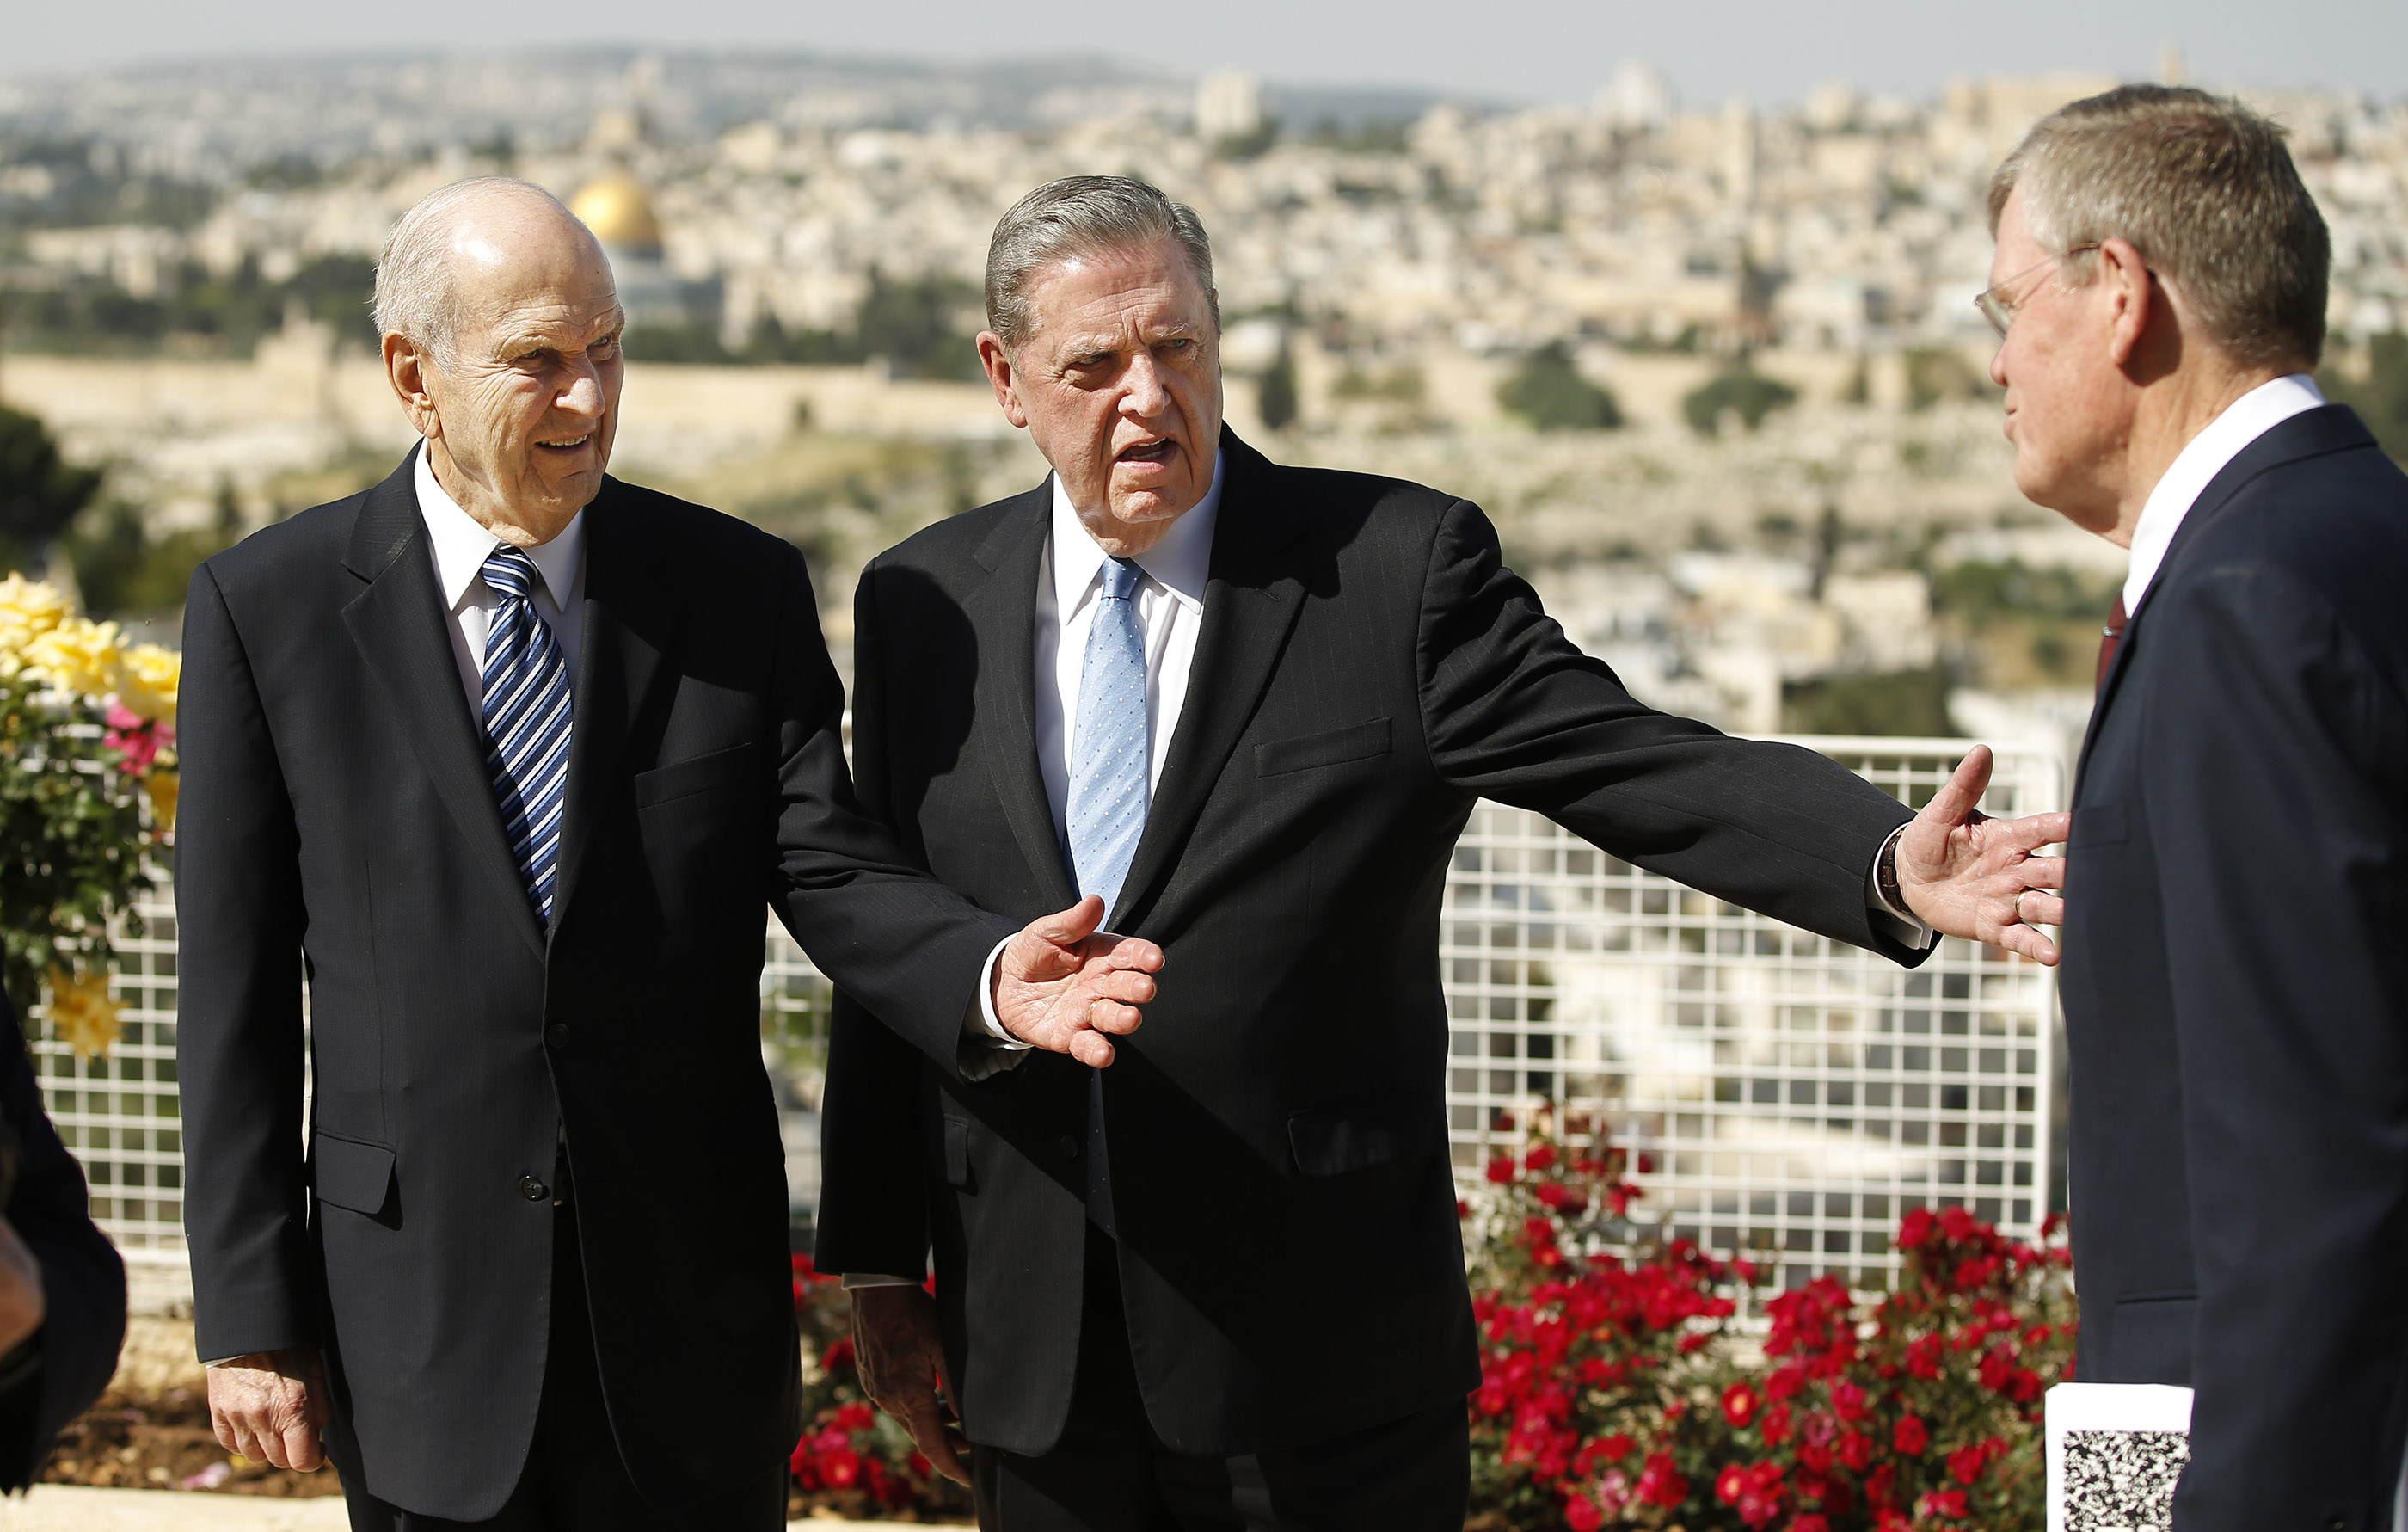 President Russell M. Nelson, president of The Church of Jesus Christ of Latter-day Saints, left, Elder Jeffrey R. Holland, of the Quorum of the Twelve Apostles, greet District President Dennis Brimhall at the BYU Jerusalem Center in Jerusalem on Saturday, April 14, 2018. President Nelson is on a global tour of eight countries.